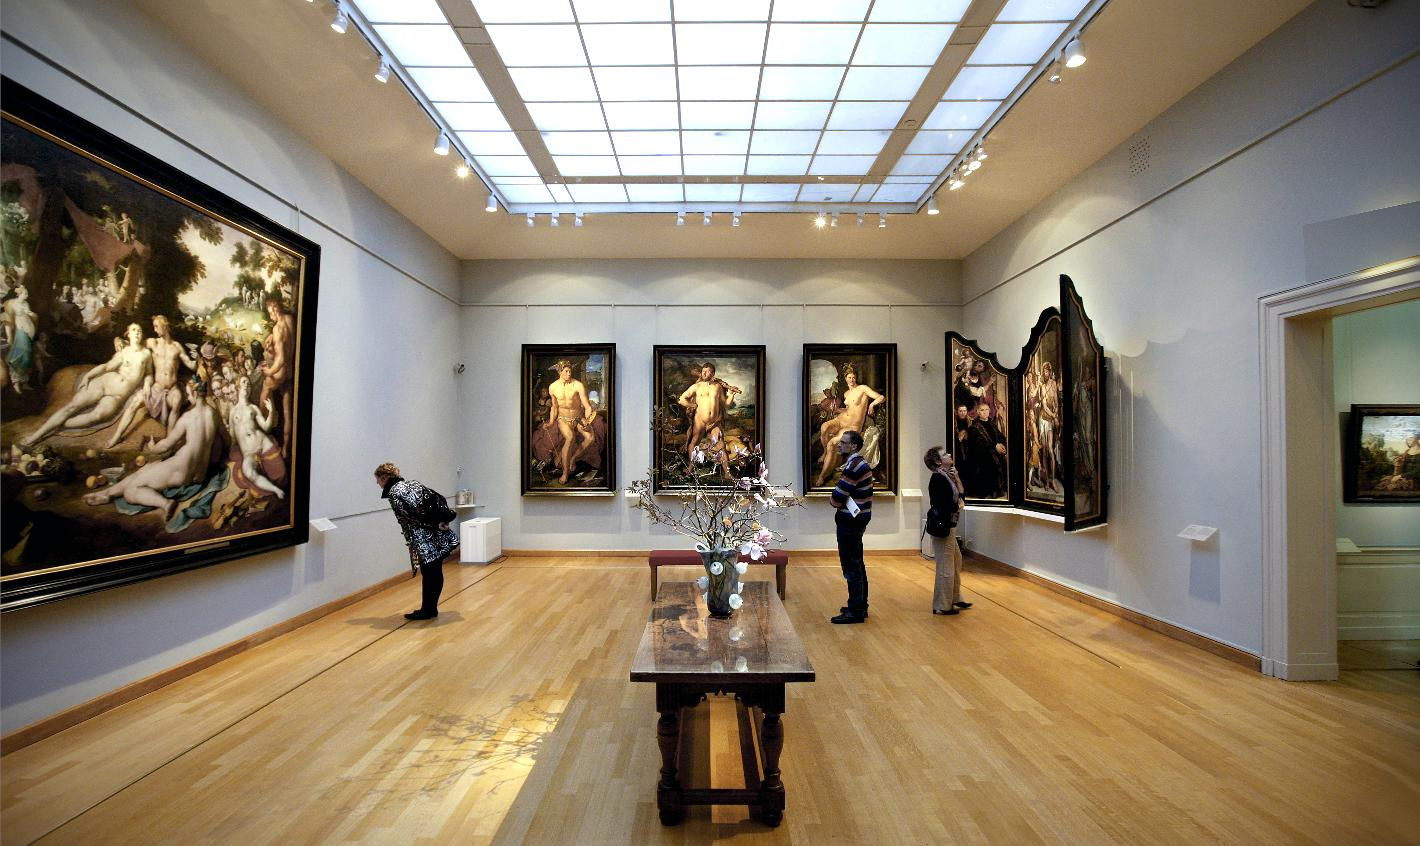 Foto Frans Hals Museum in Haarlem, Zien, Musea & galleries - #2